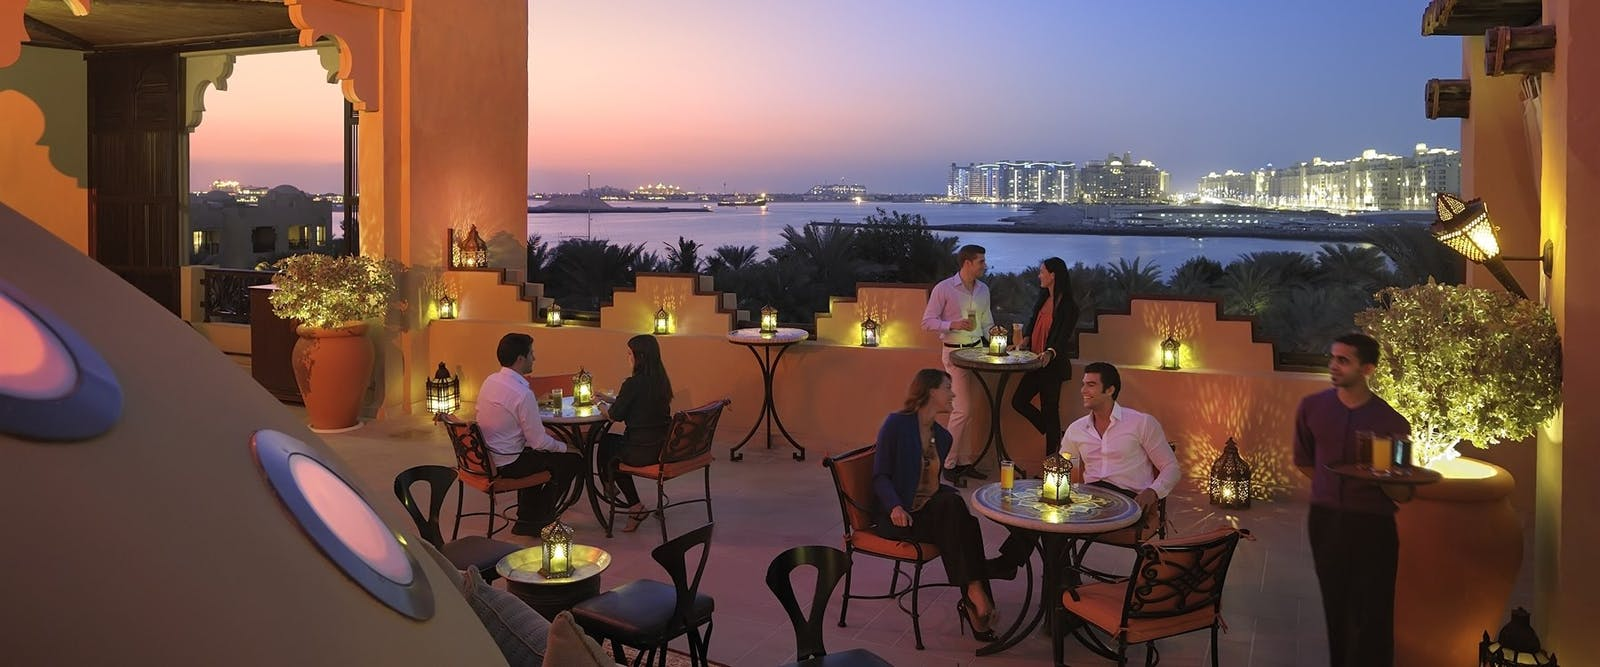 Rooftop Terrace at One&Only Royal Mirage - The Residence & Spa, Dubai